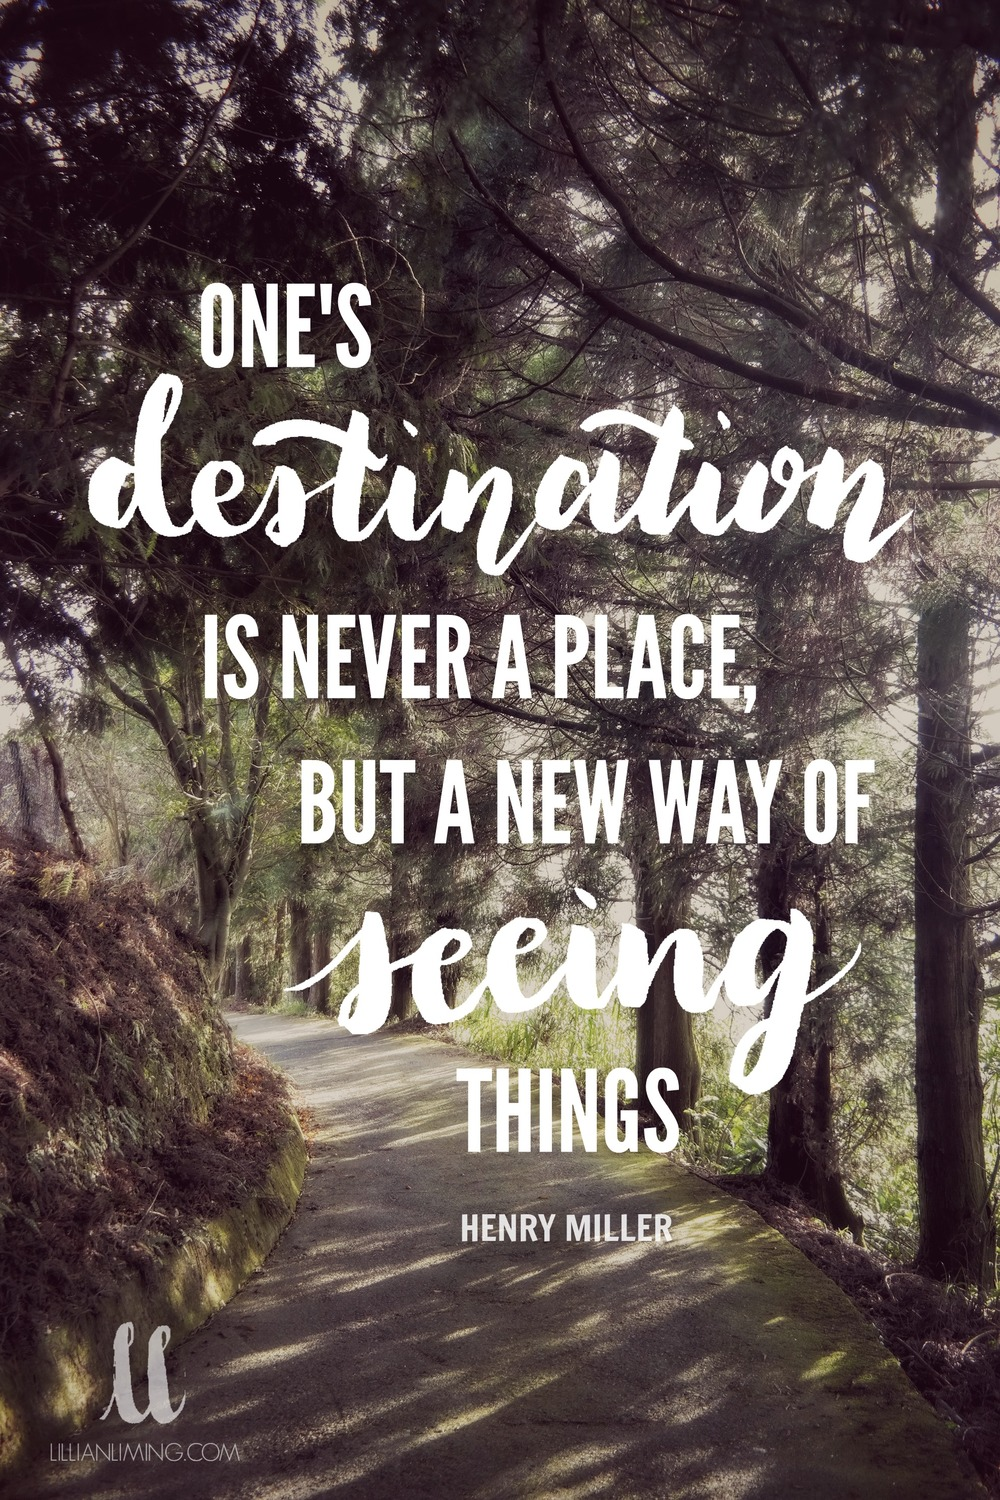 Destination is never a place - lillianliming.com